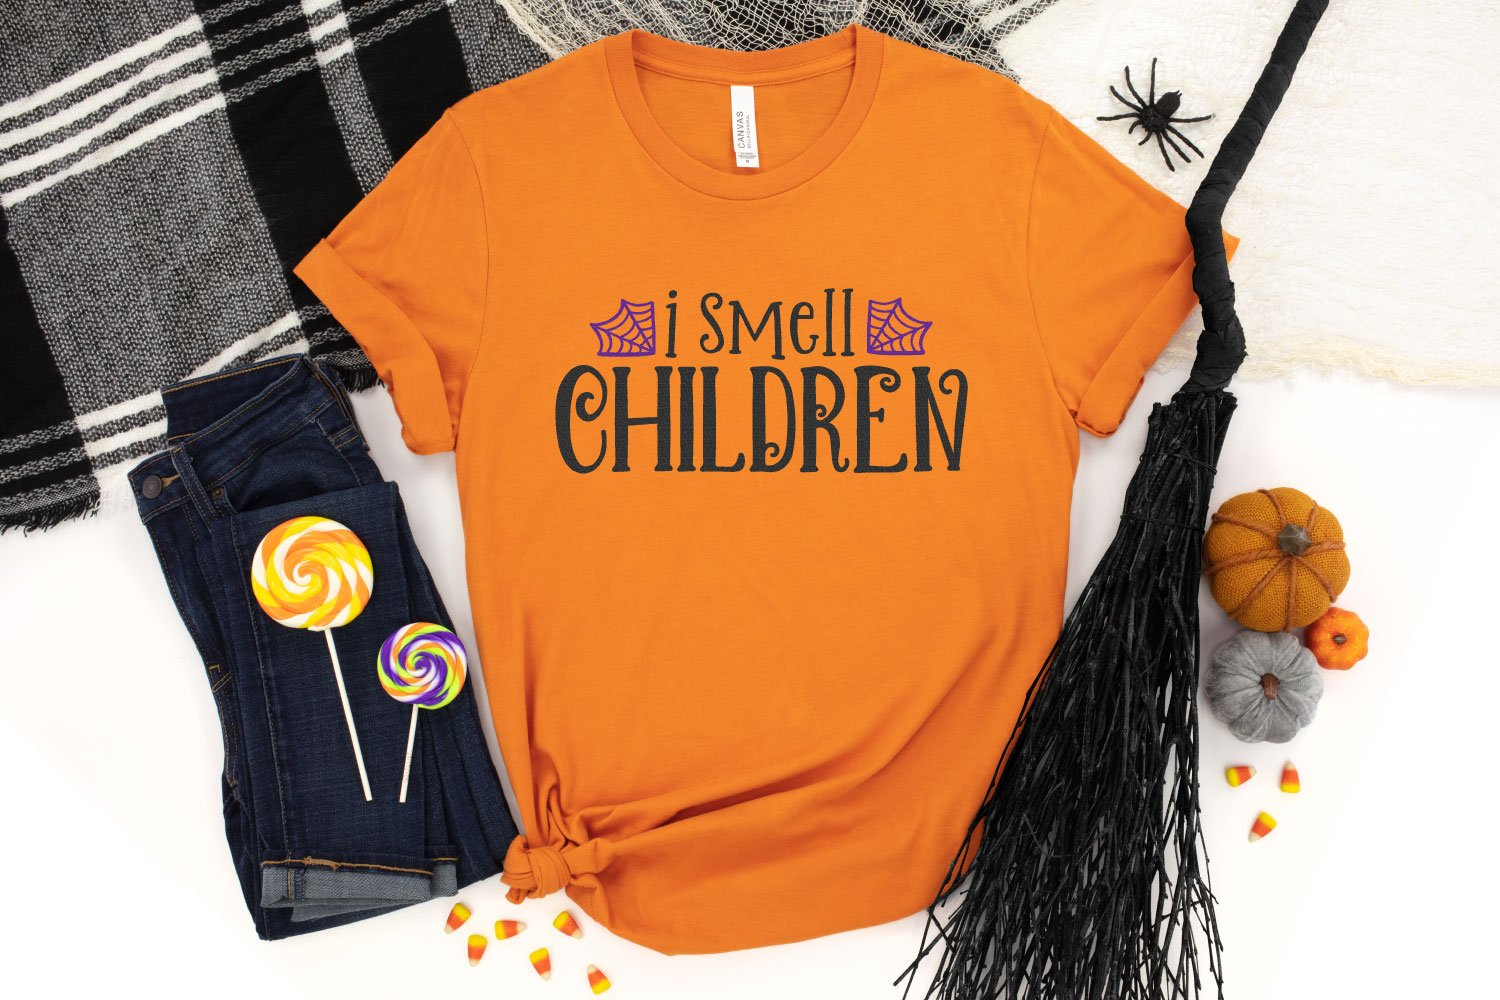 Hocus Pocus SVG on shirt